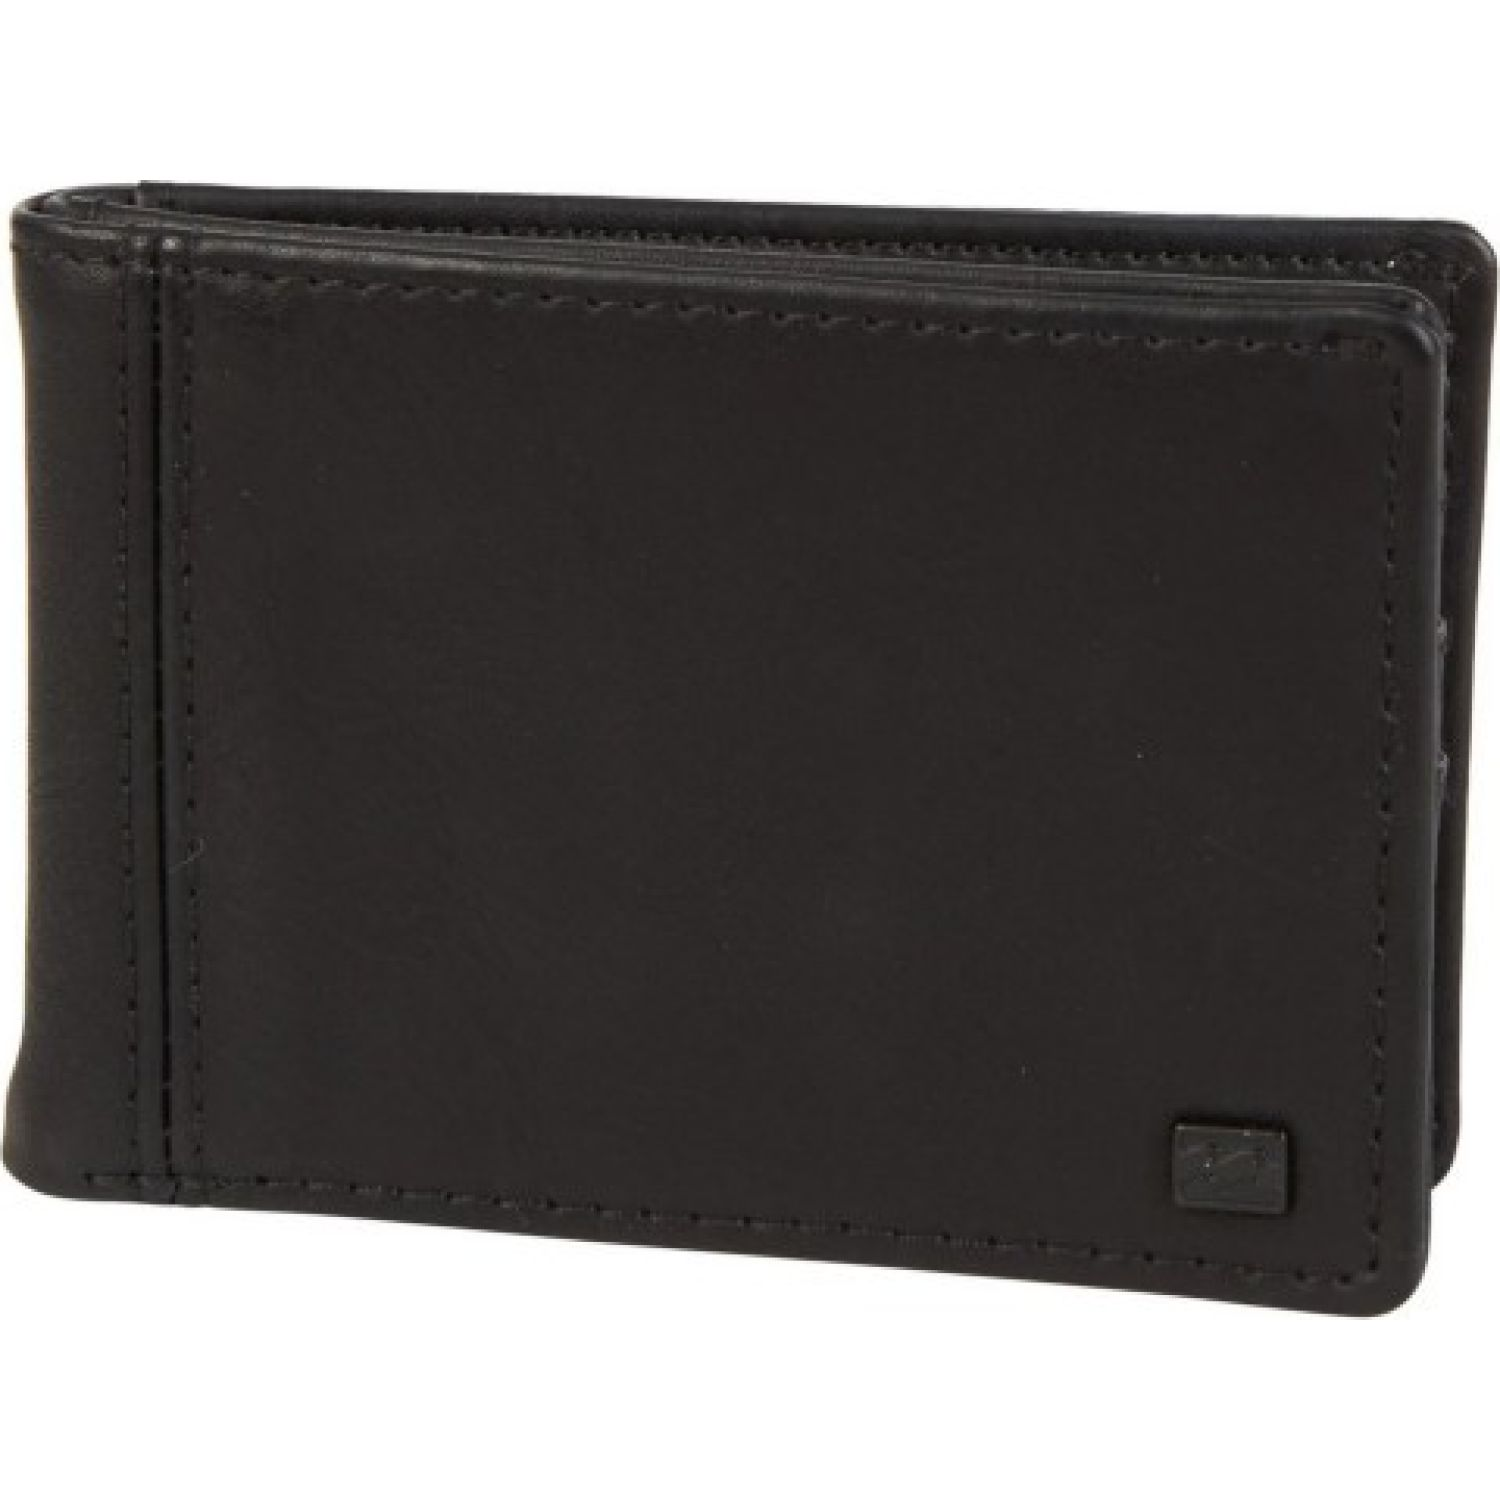 Billabong Revival Slim Wallet Negro Billeteras